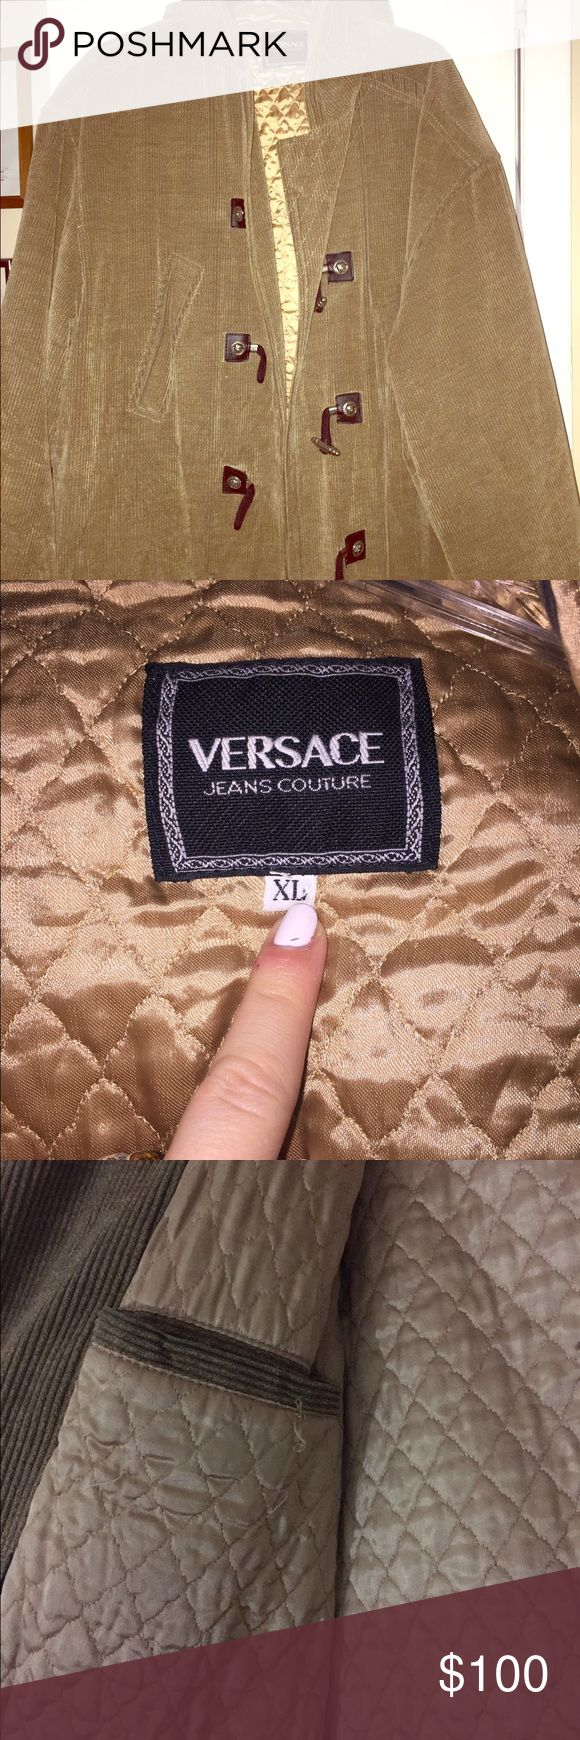 Vintage Versace Jacket Vintage corduroy Versace jacket with a quilted silk inside. Very warm and perfect for the fall/winter. Very rare and vintage!! Versace Jackets & Coats Pea Coats